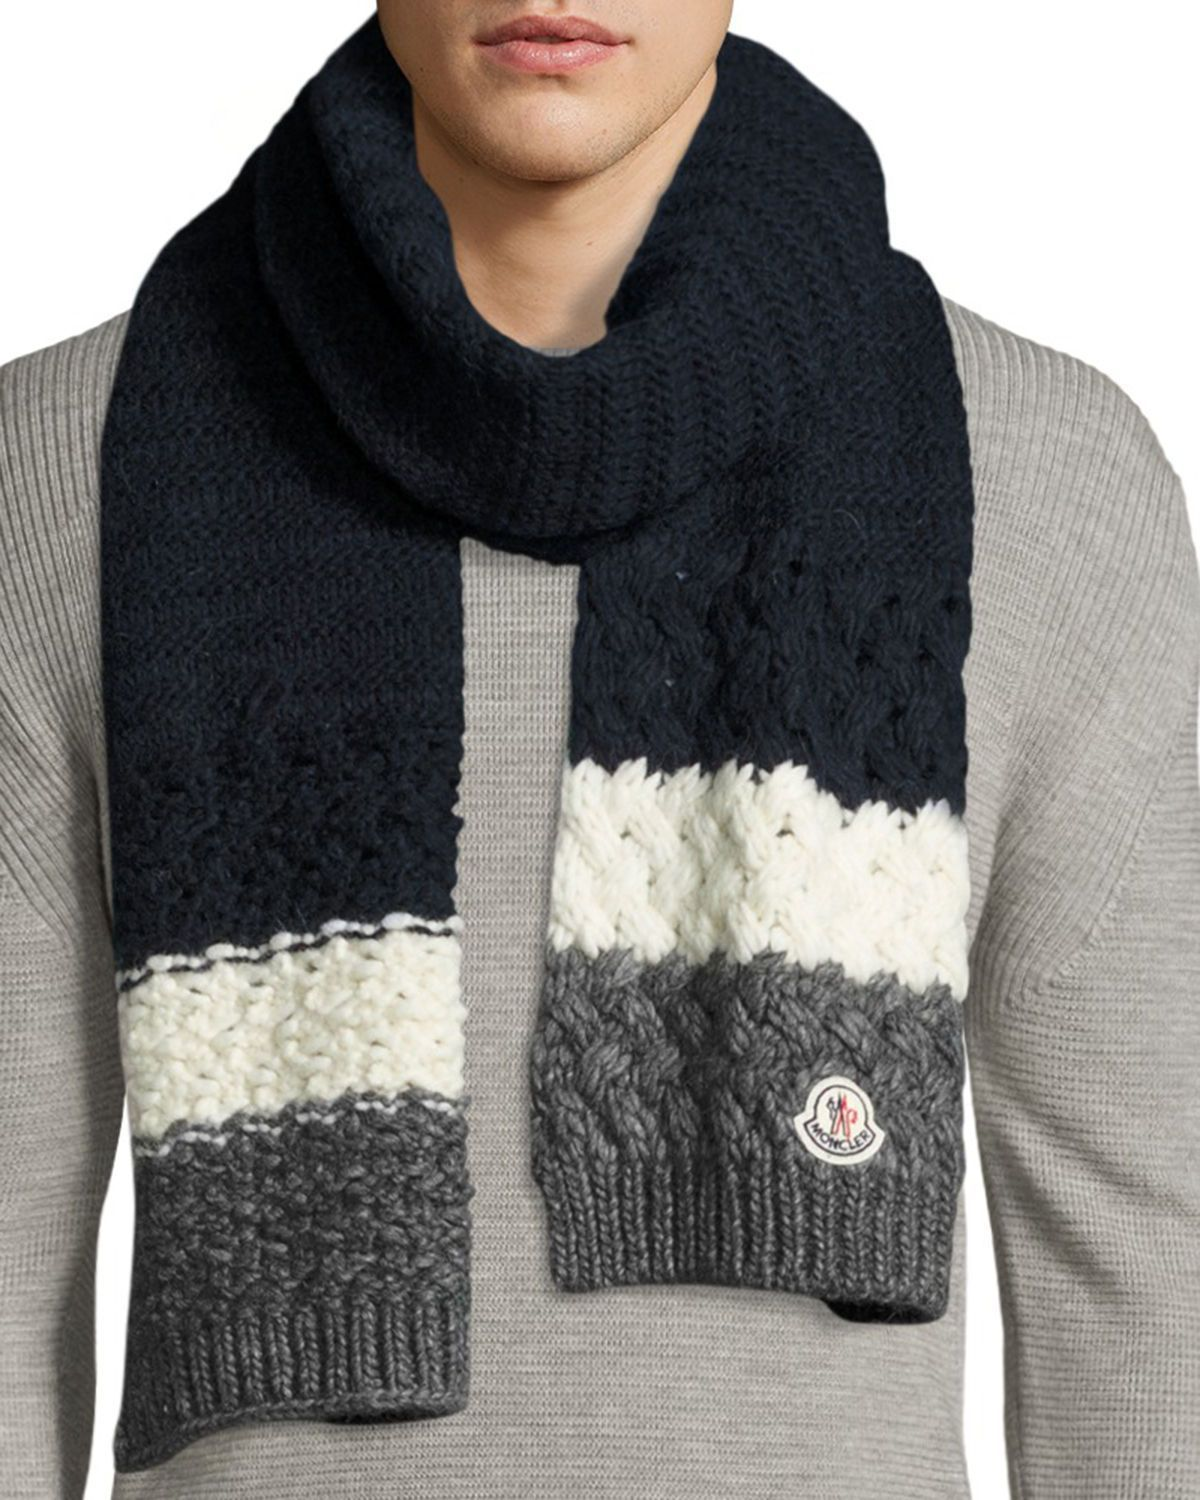 Moncler cashmere ribbed-knit scarf. Striped chunky cable-knit ends. Made in Italy. | Knitting | Pinterest.